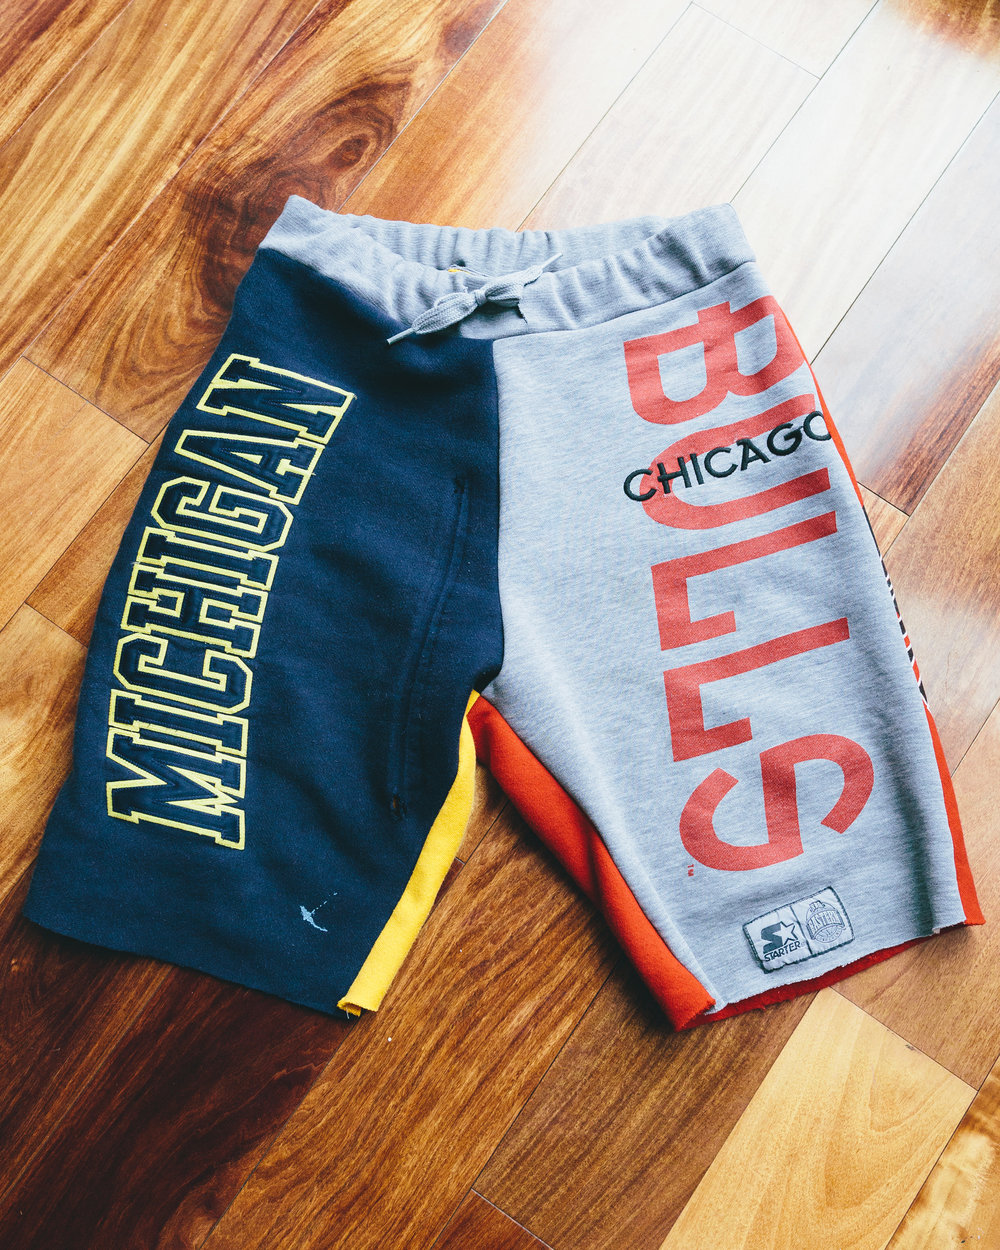 Michigan/Bulls Shorts - Midwest inspired by the Midwest